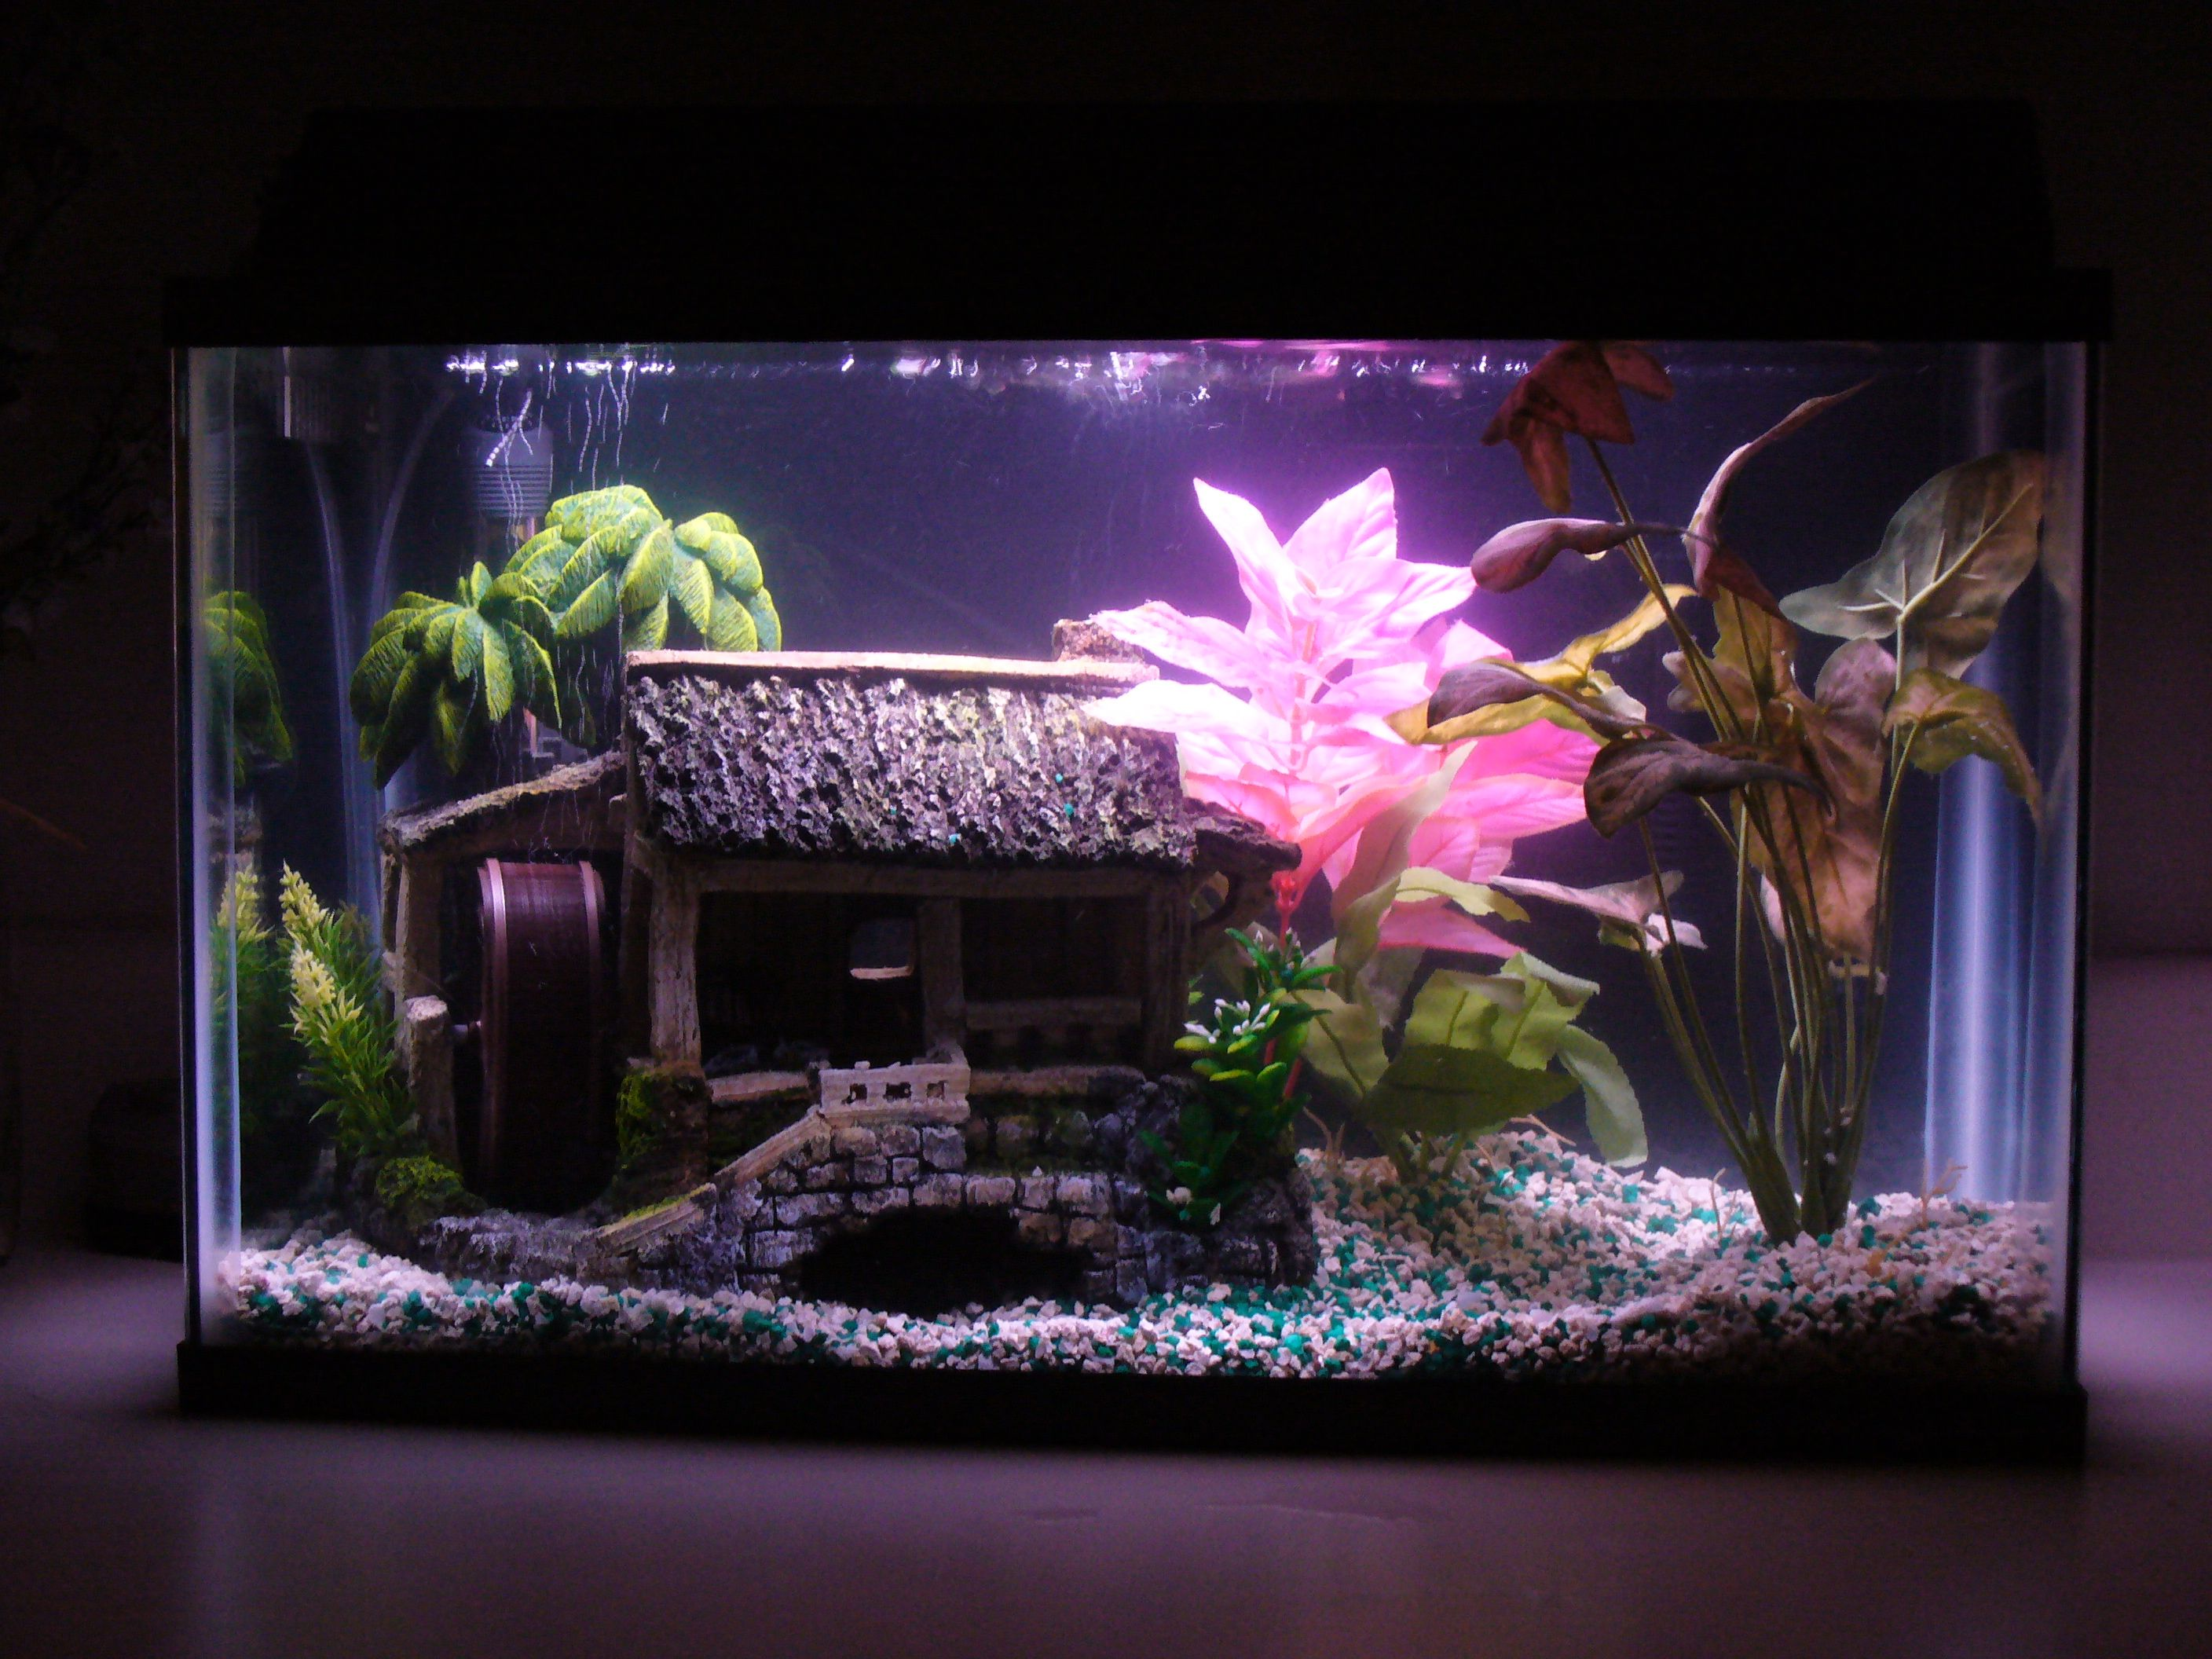 10 Gallon Fish Tank Stand Ideas For Your Aquarium 10 Gallon Fish Tank Fresh Water Fish Tank Fish Tank Stand